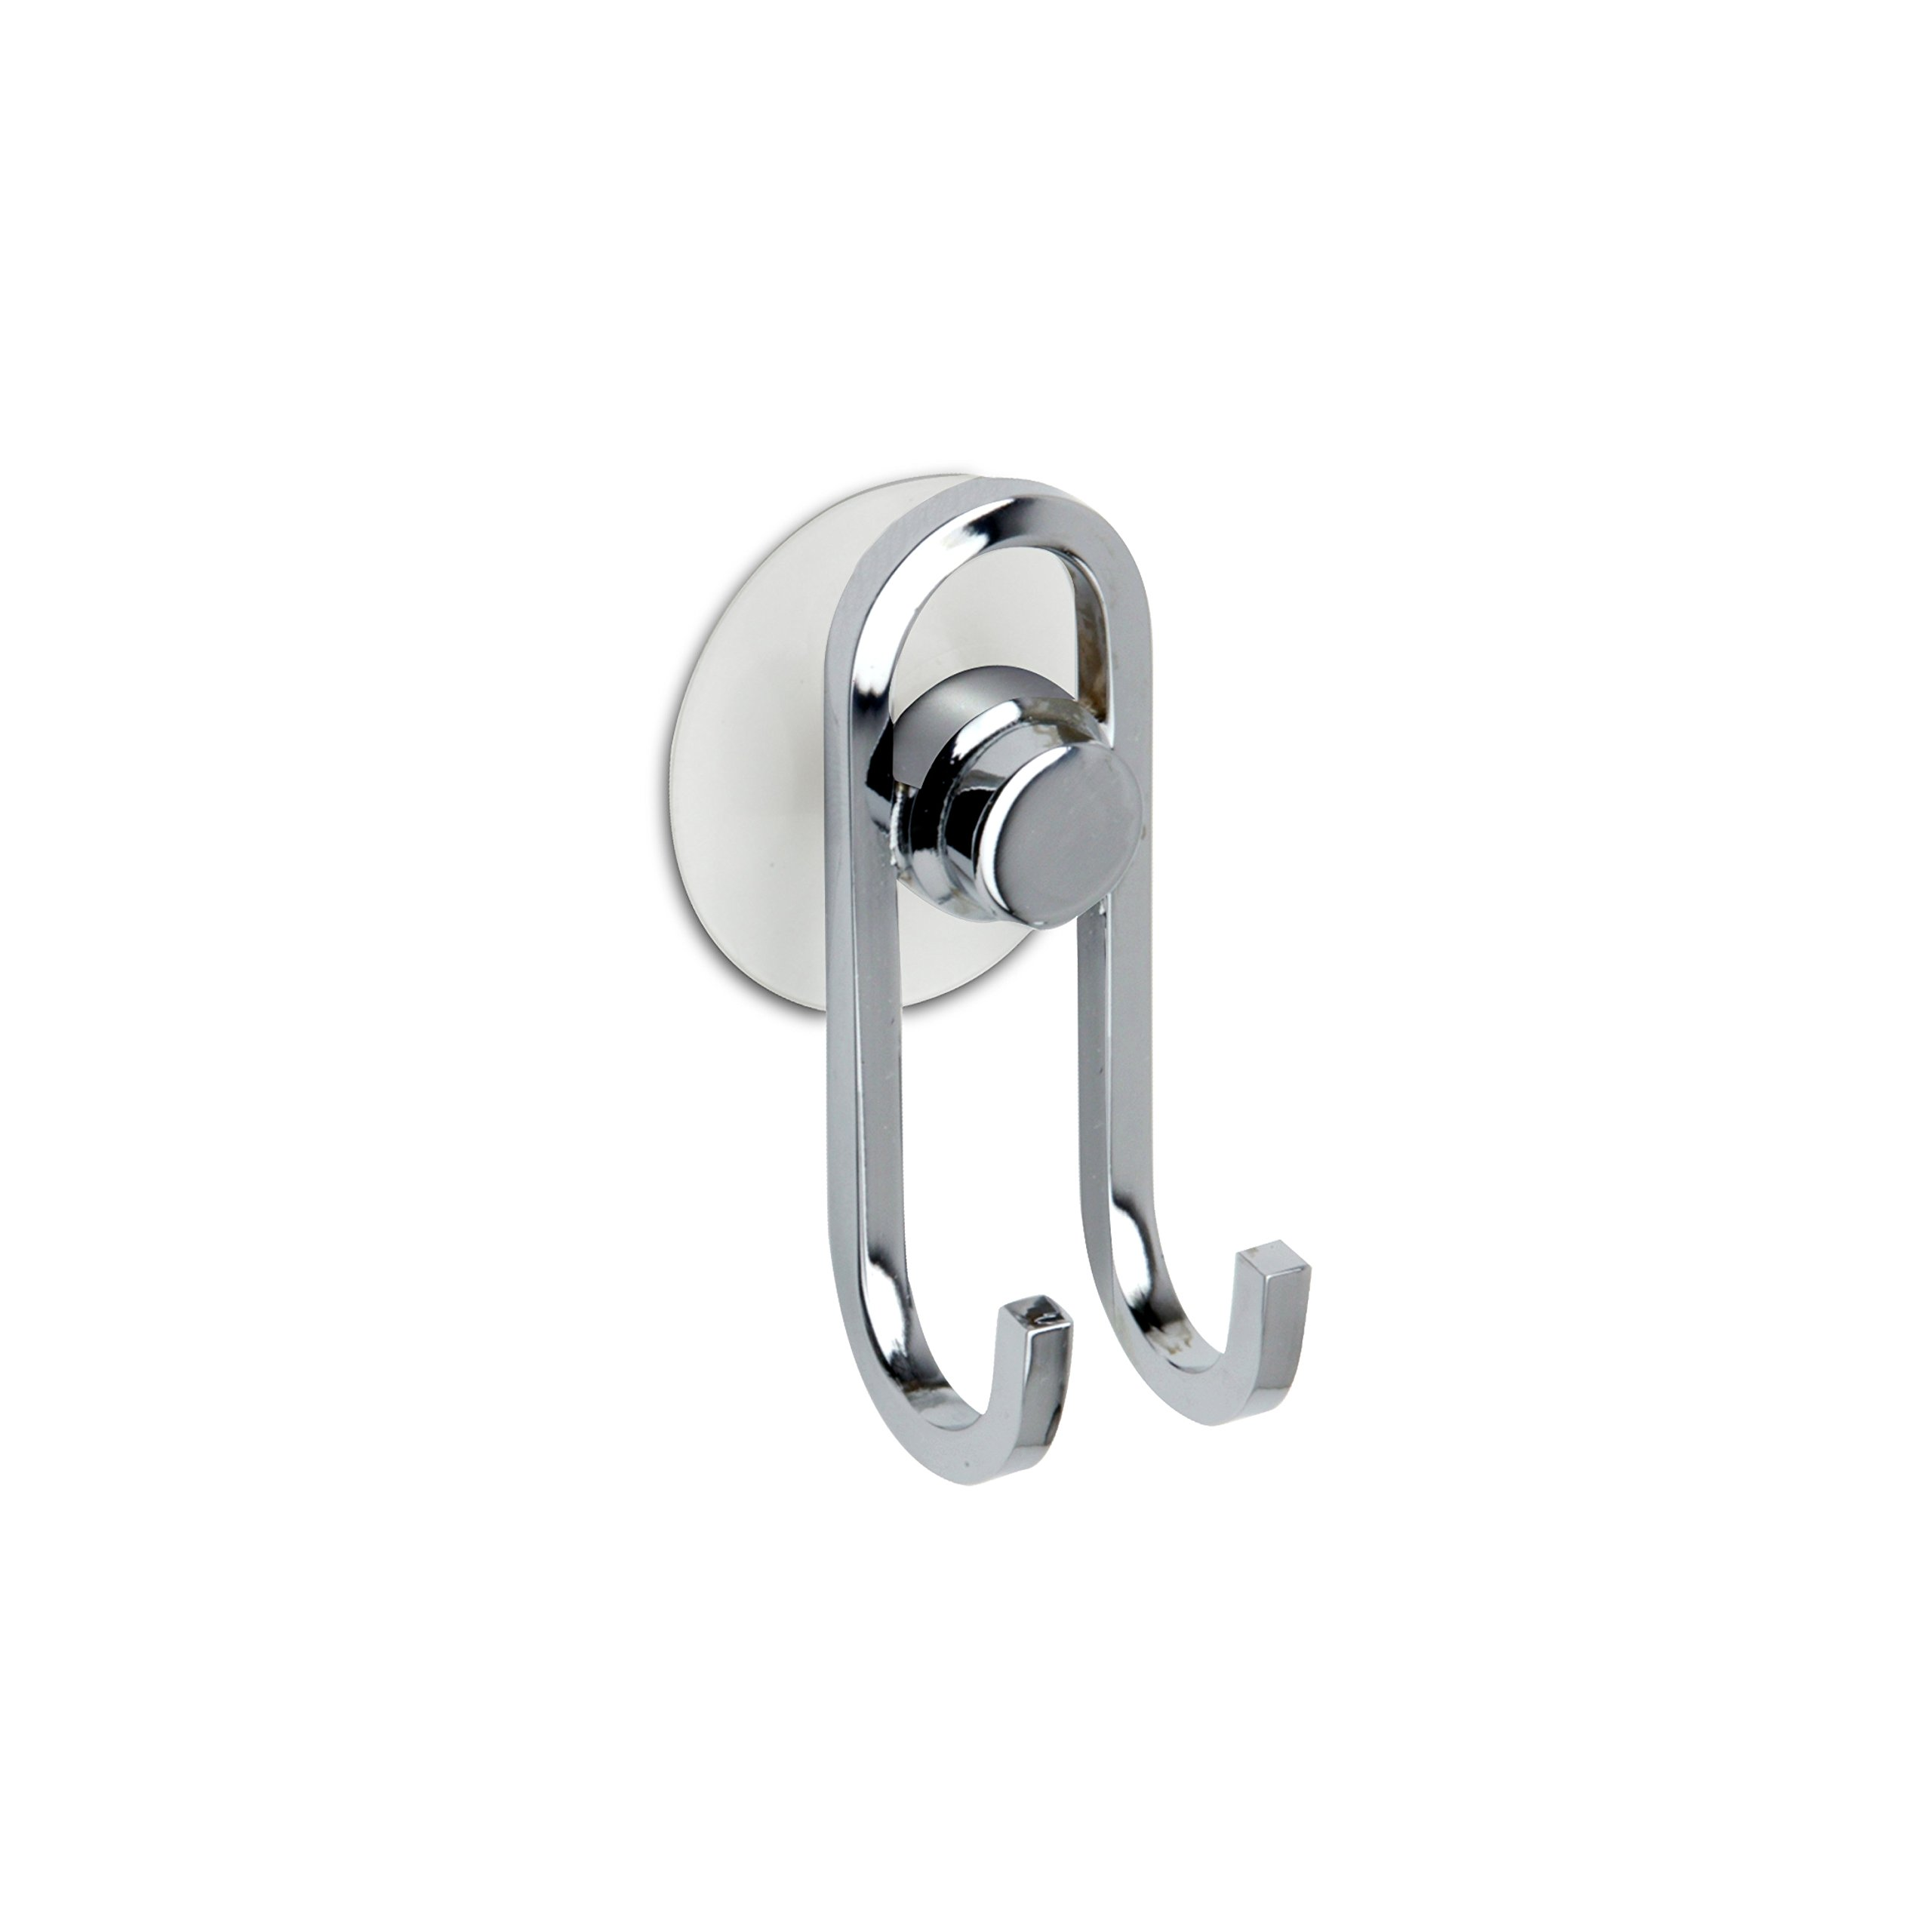 W-Luxury Brass Double Towel Robe Hook/Hanger Suction Cup for Bath and Squeegee Holder (Polished Chrome)